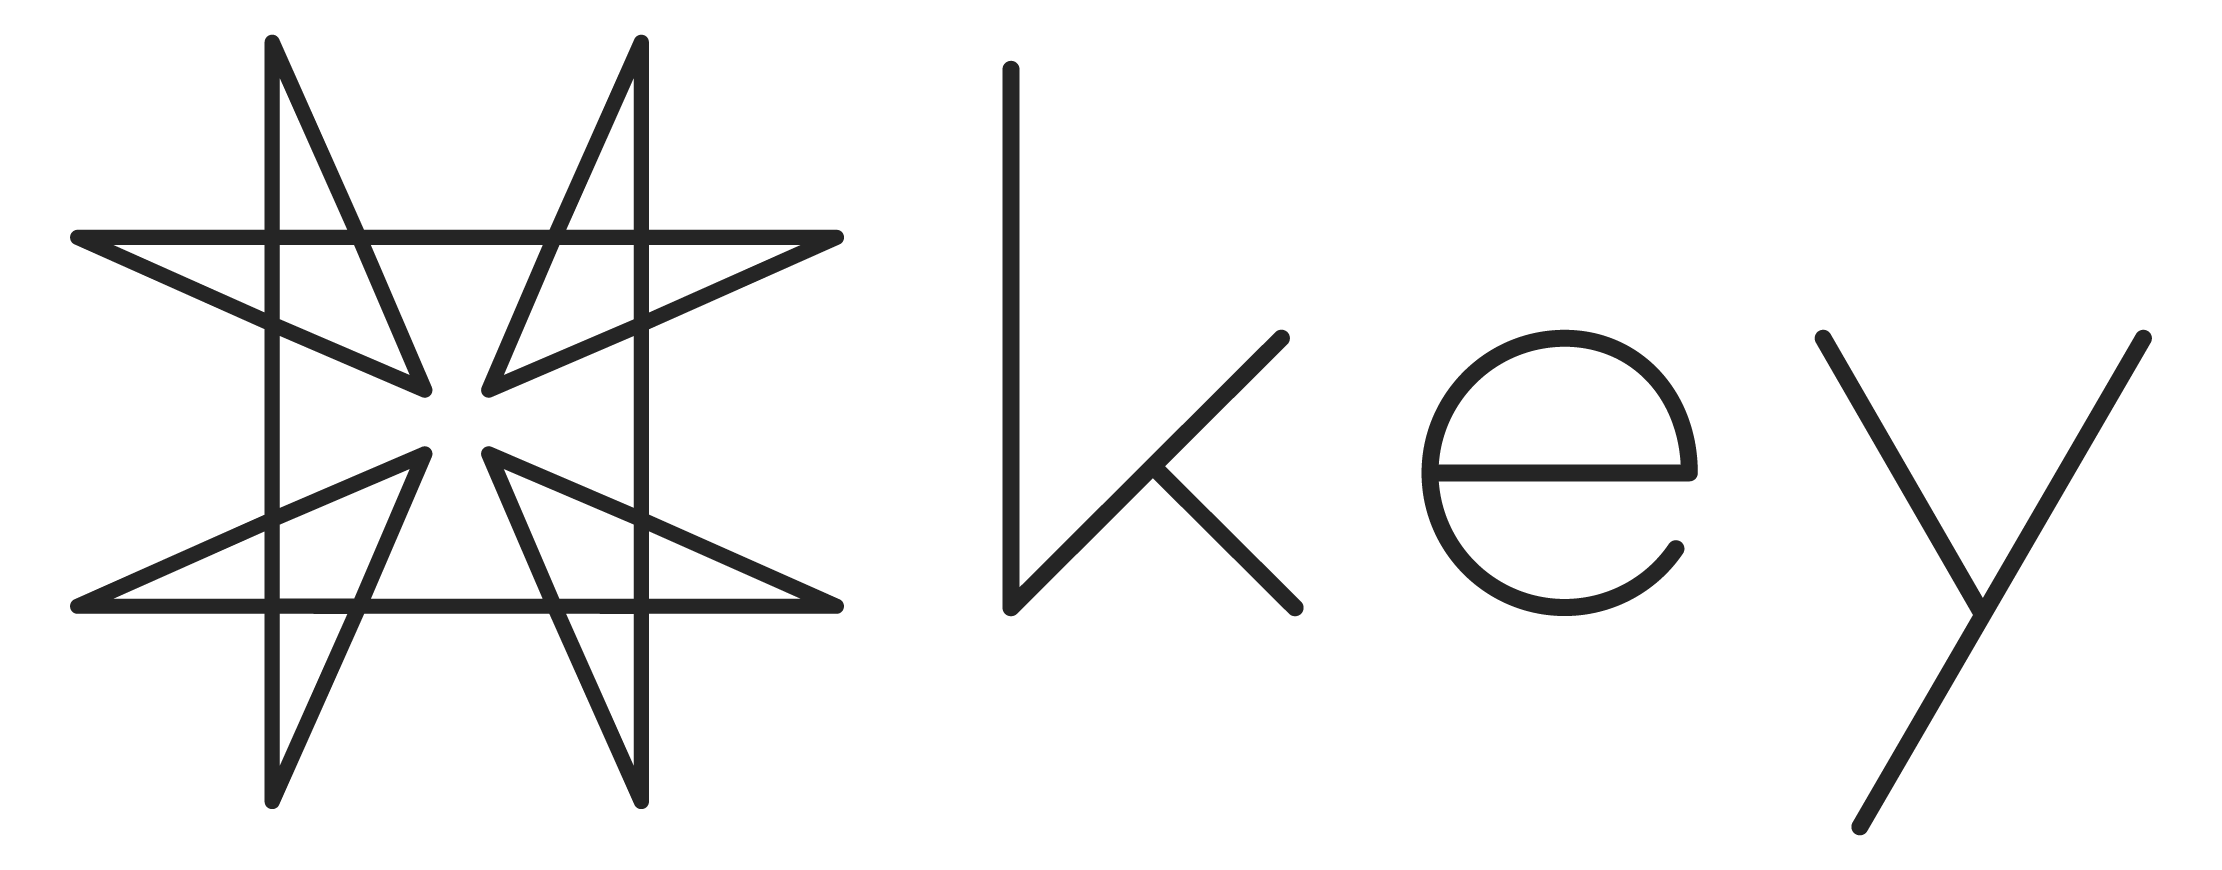 logo for key conceirge